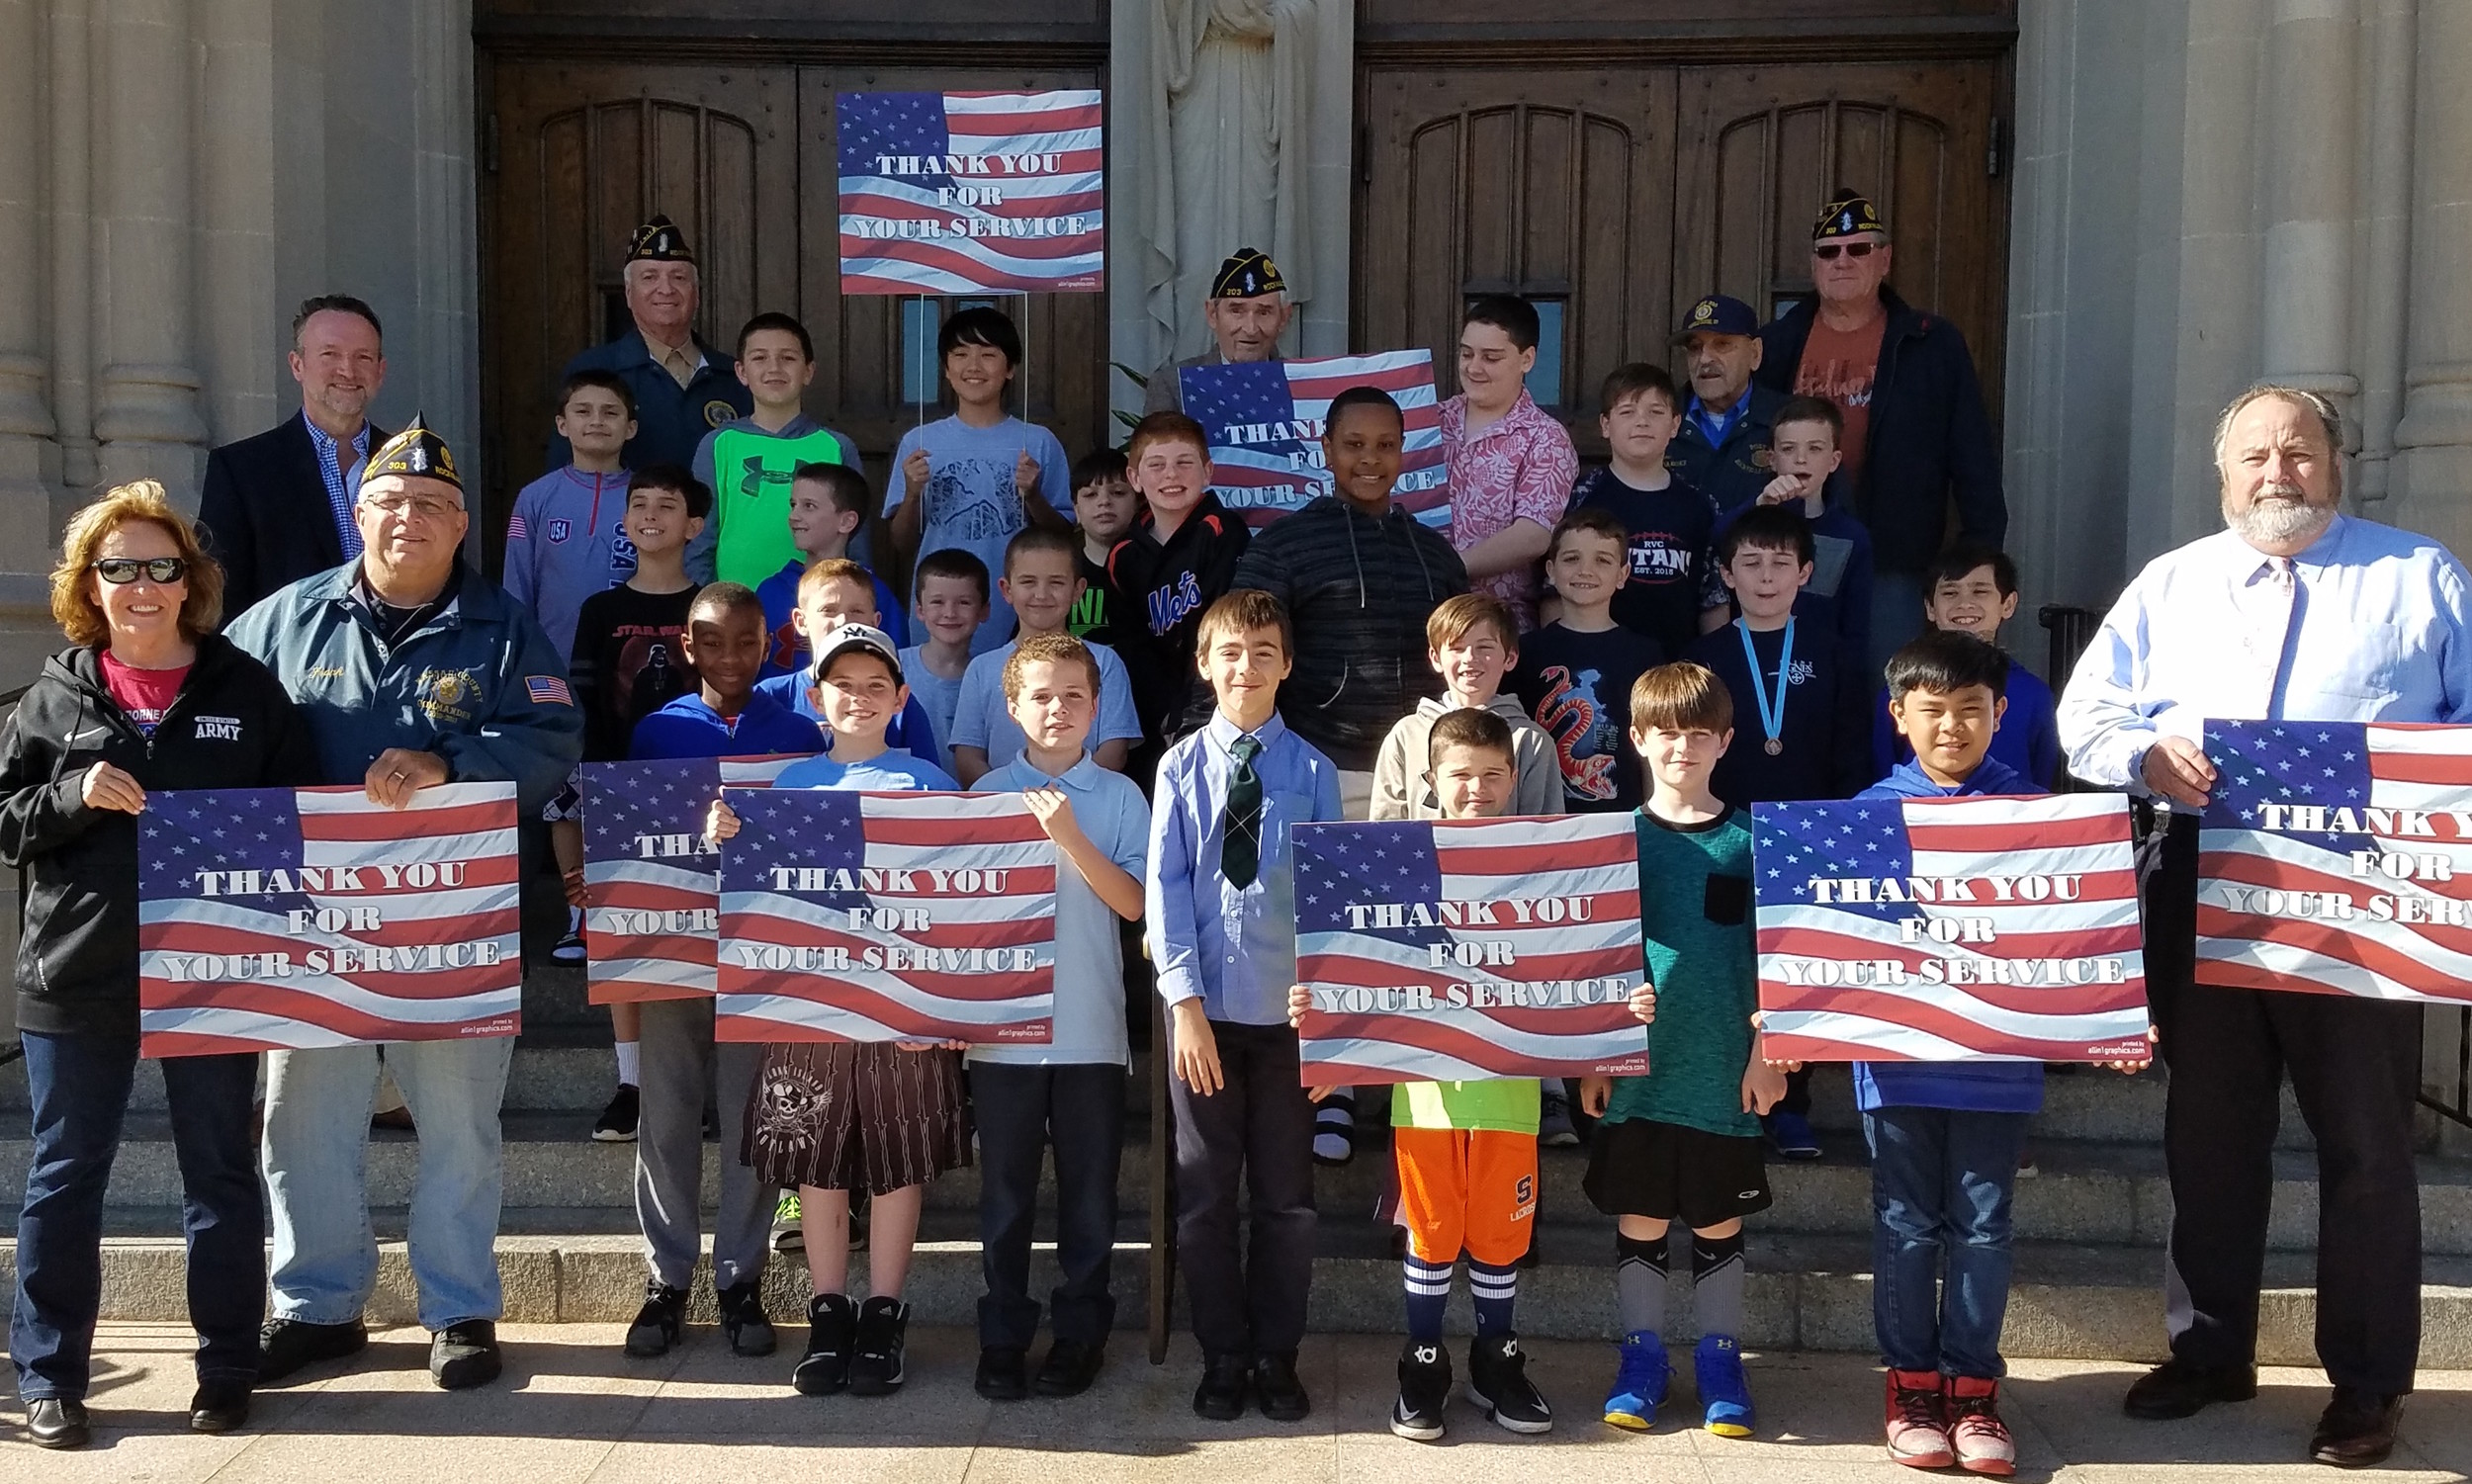 With the help of veterans and village officials, members of the St. Agnes Cathedral Boys Choir proudly displayed their patriotic lawn signs in front of the church on Monday.